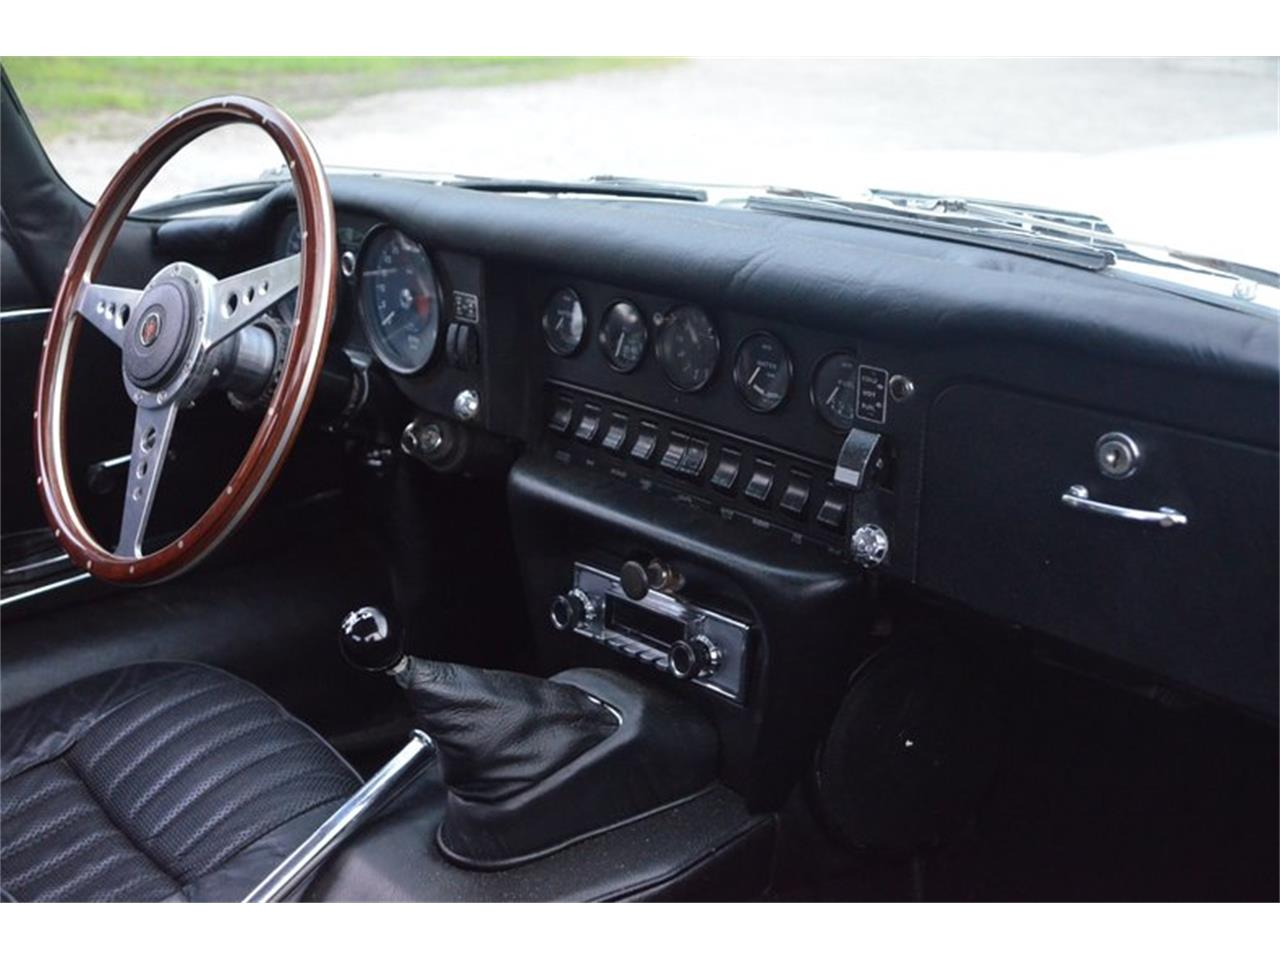 Large Picture of 1971 Jaguar E-Type located in Tennessee - $52,000.00 - OBGE